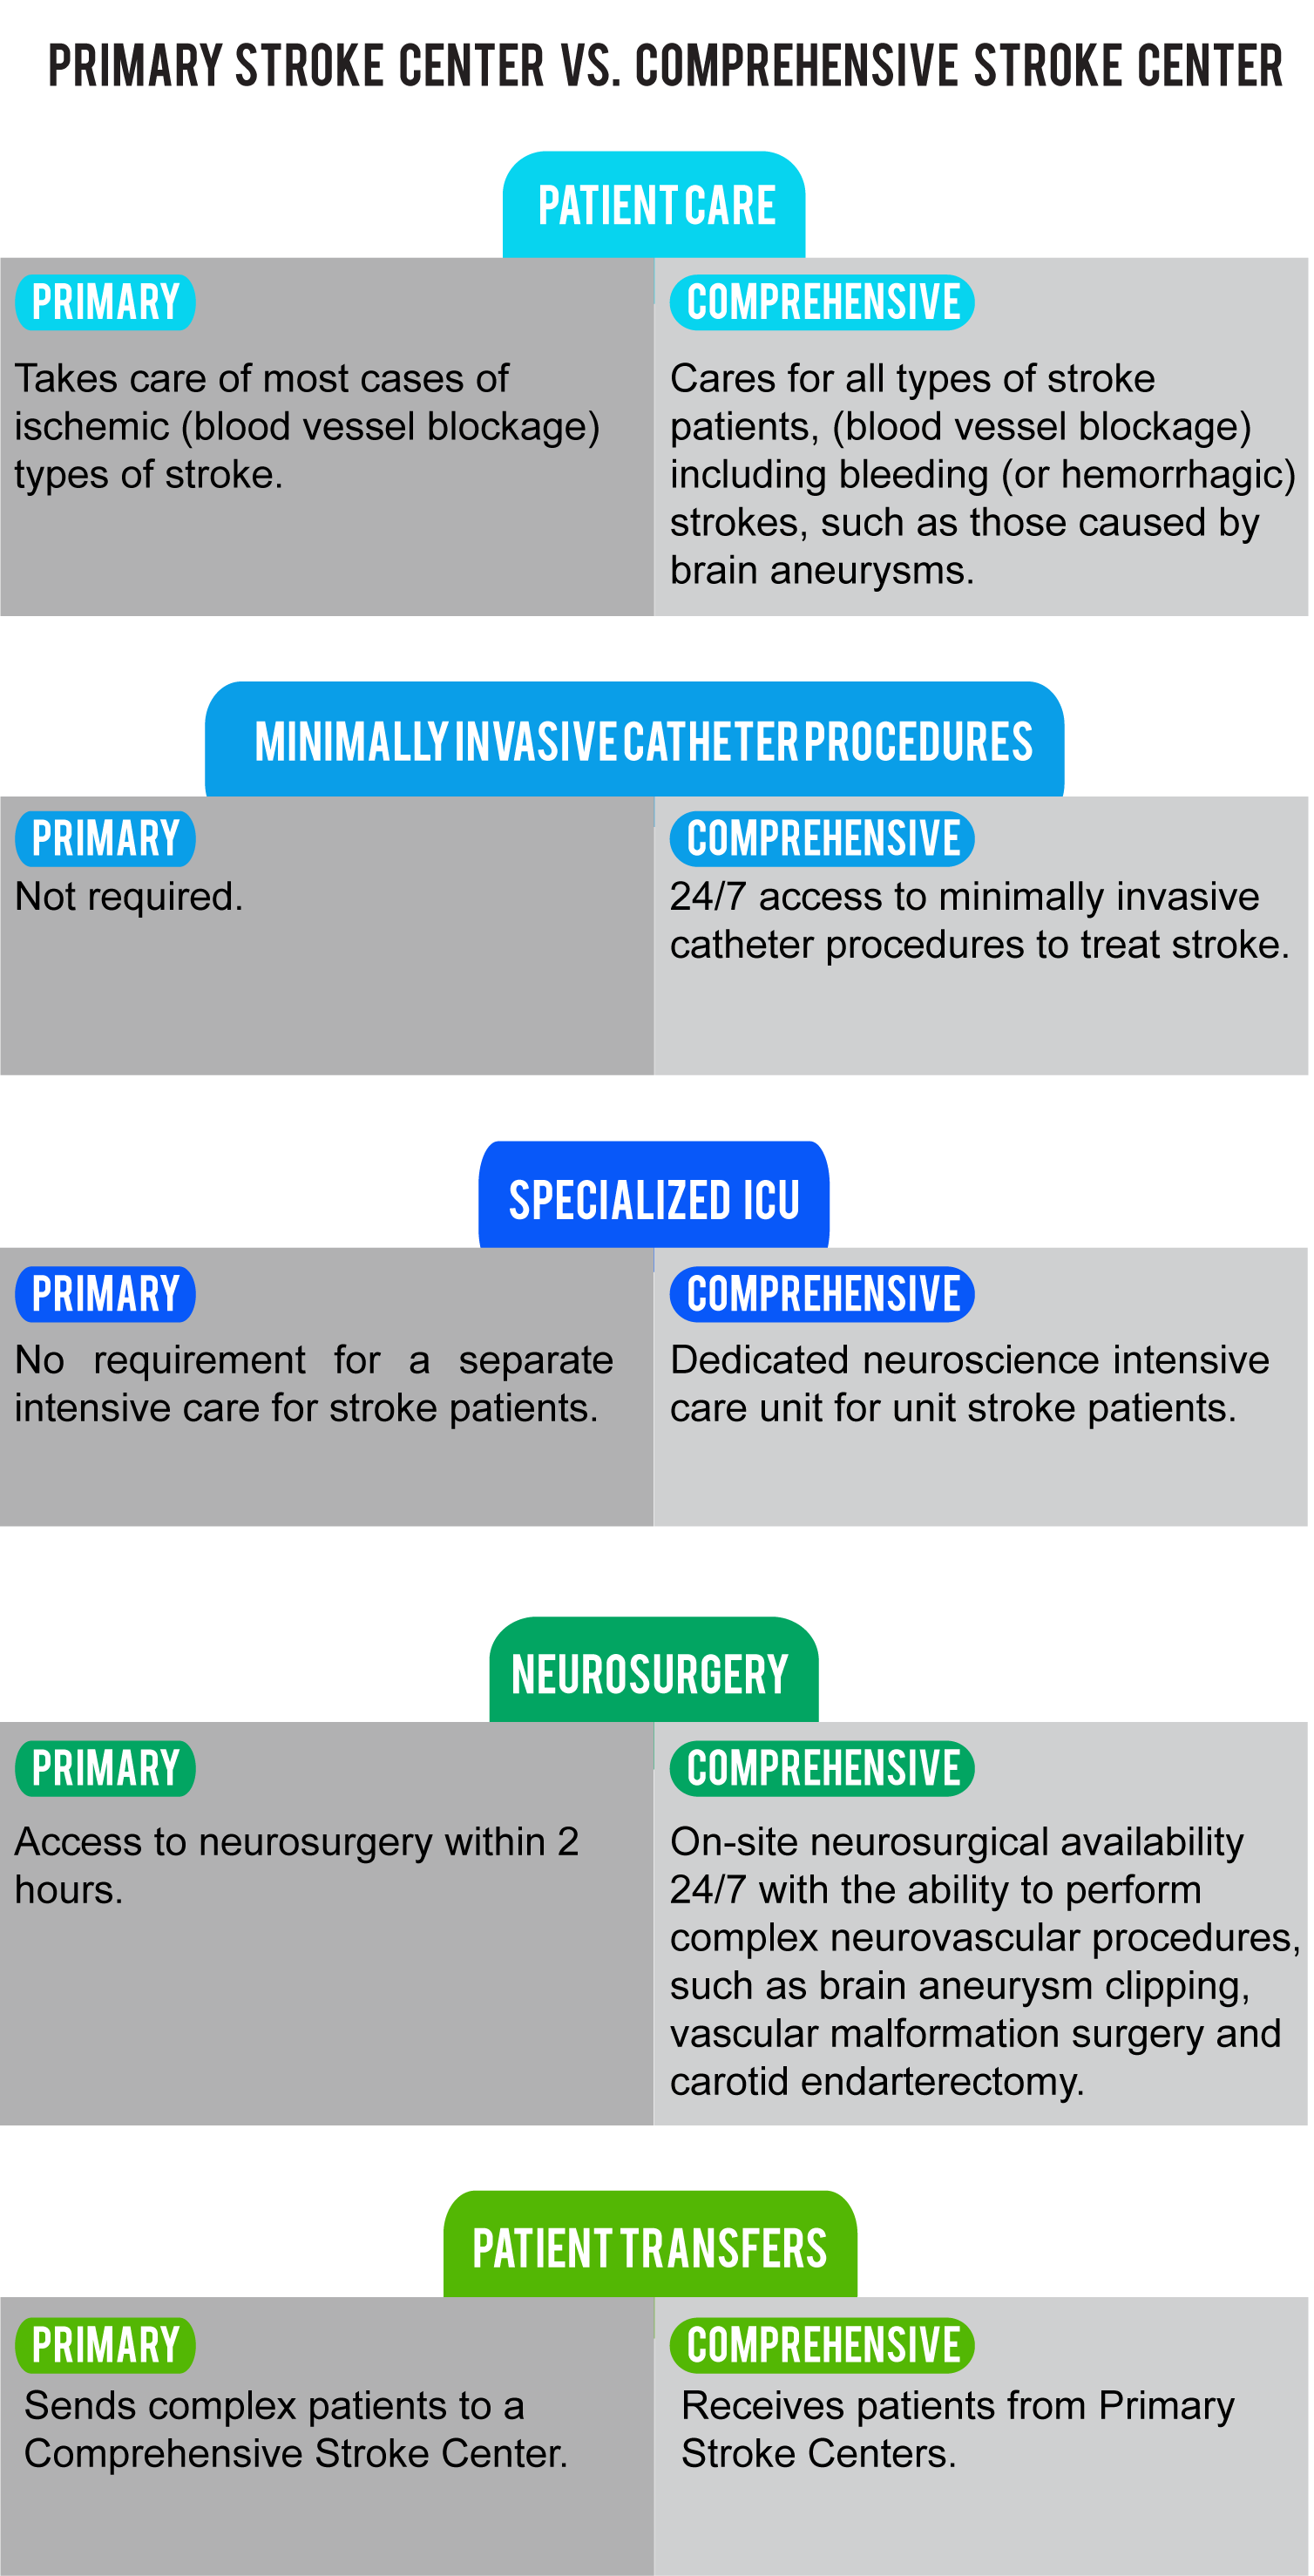 What Are Primary And Comprehensive Stroke Centers And